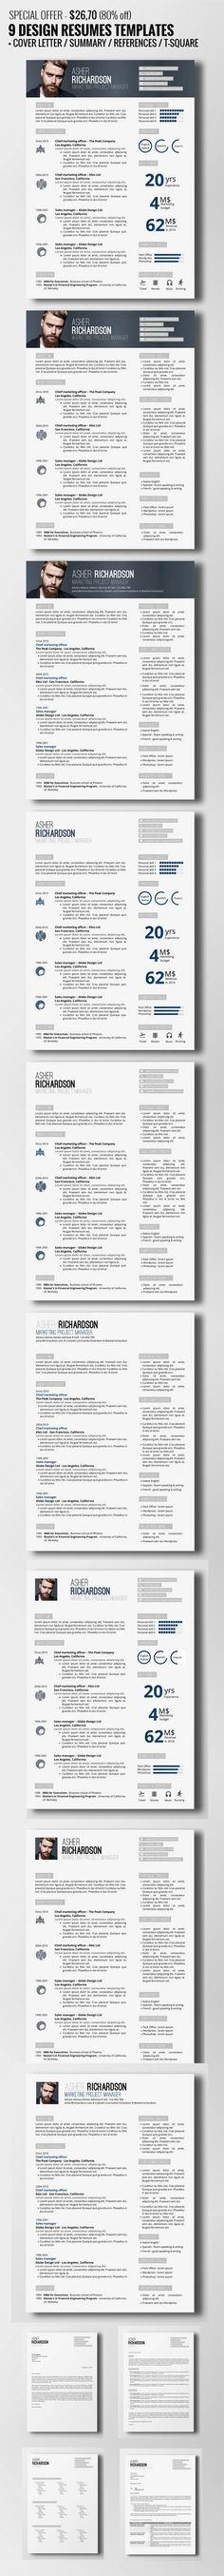 435 best Resume images on Pinterest Resume design, Design resume - artist resume template